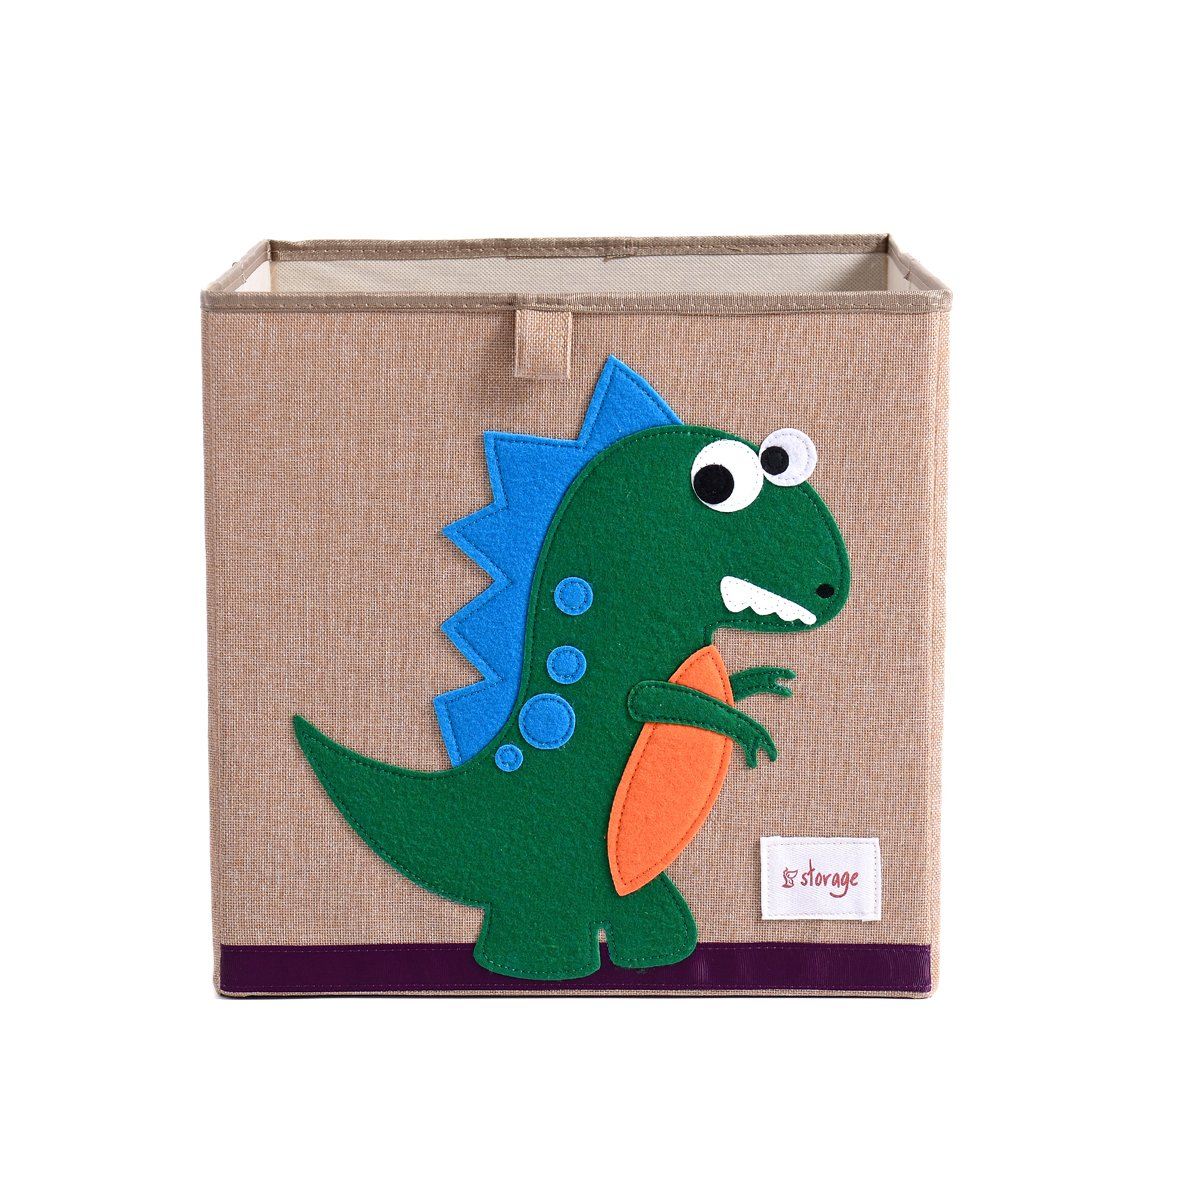 Wo Baby Foldable Canvas Fabric Toy Storage Box/Cube/Bin/Chest/Basket/Orginizer for Kids, Storage Bin for Shelves, 13inch (Cube, Dinosaur)